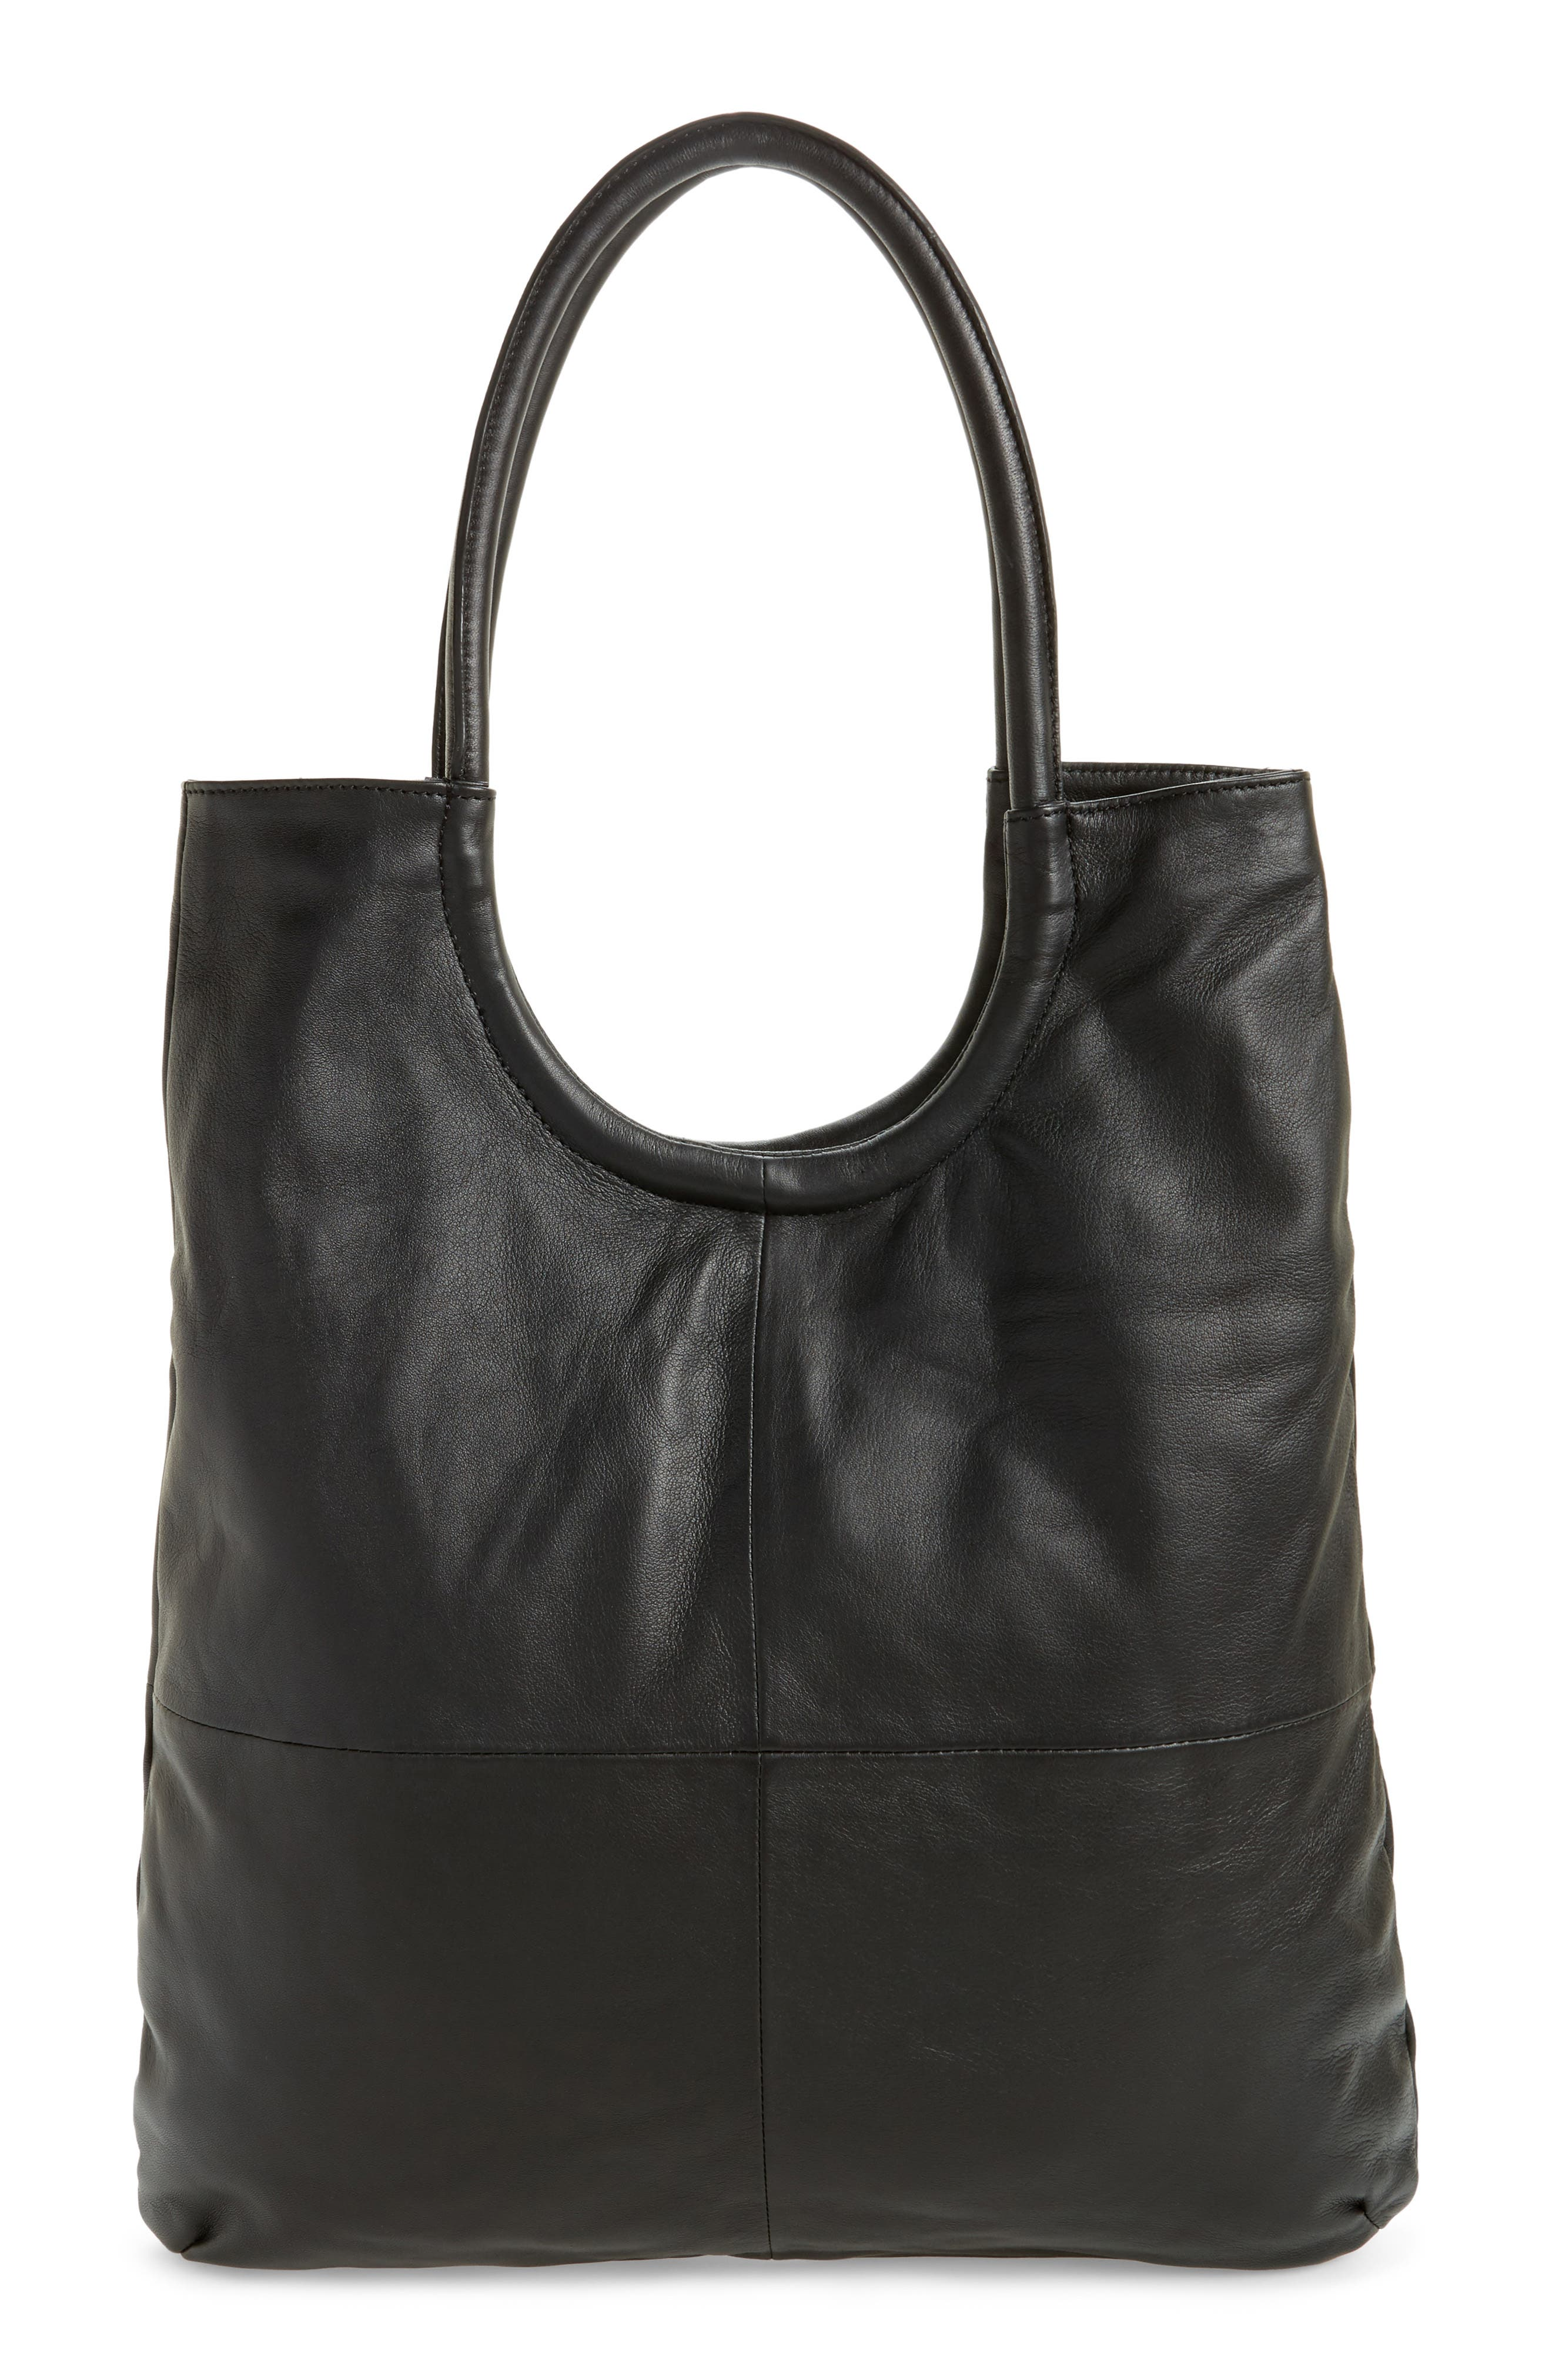 Topshop Oversized Top Handle Leather Tote